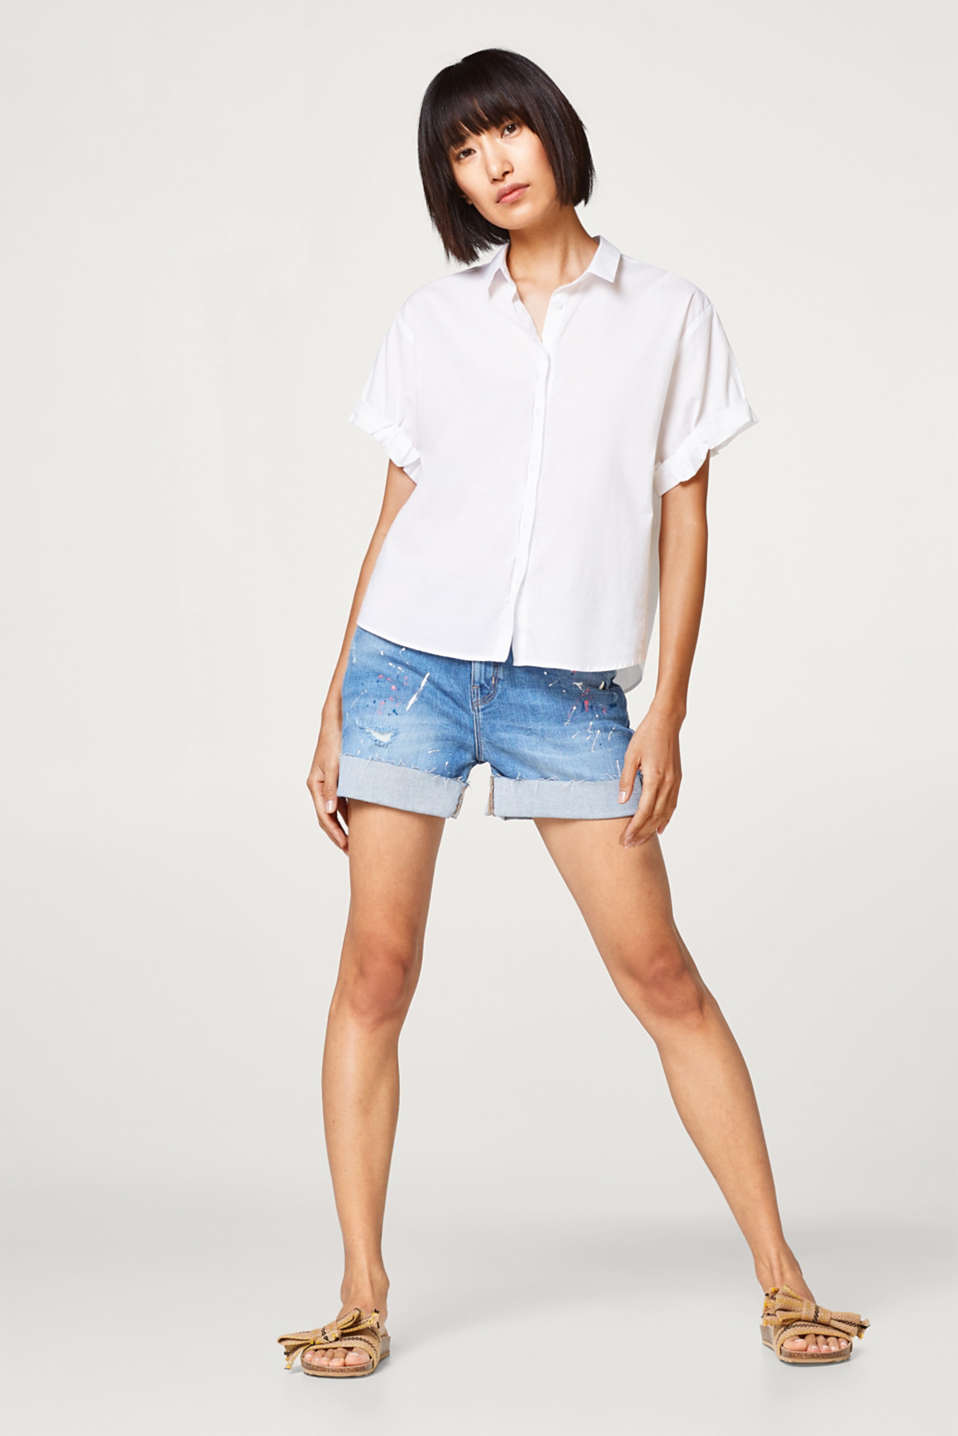 Airy stretch cotton blouse with new details